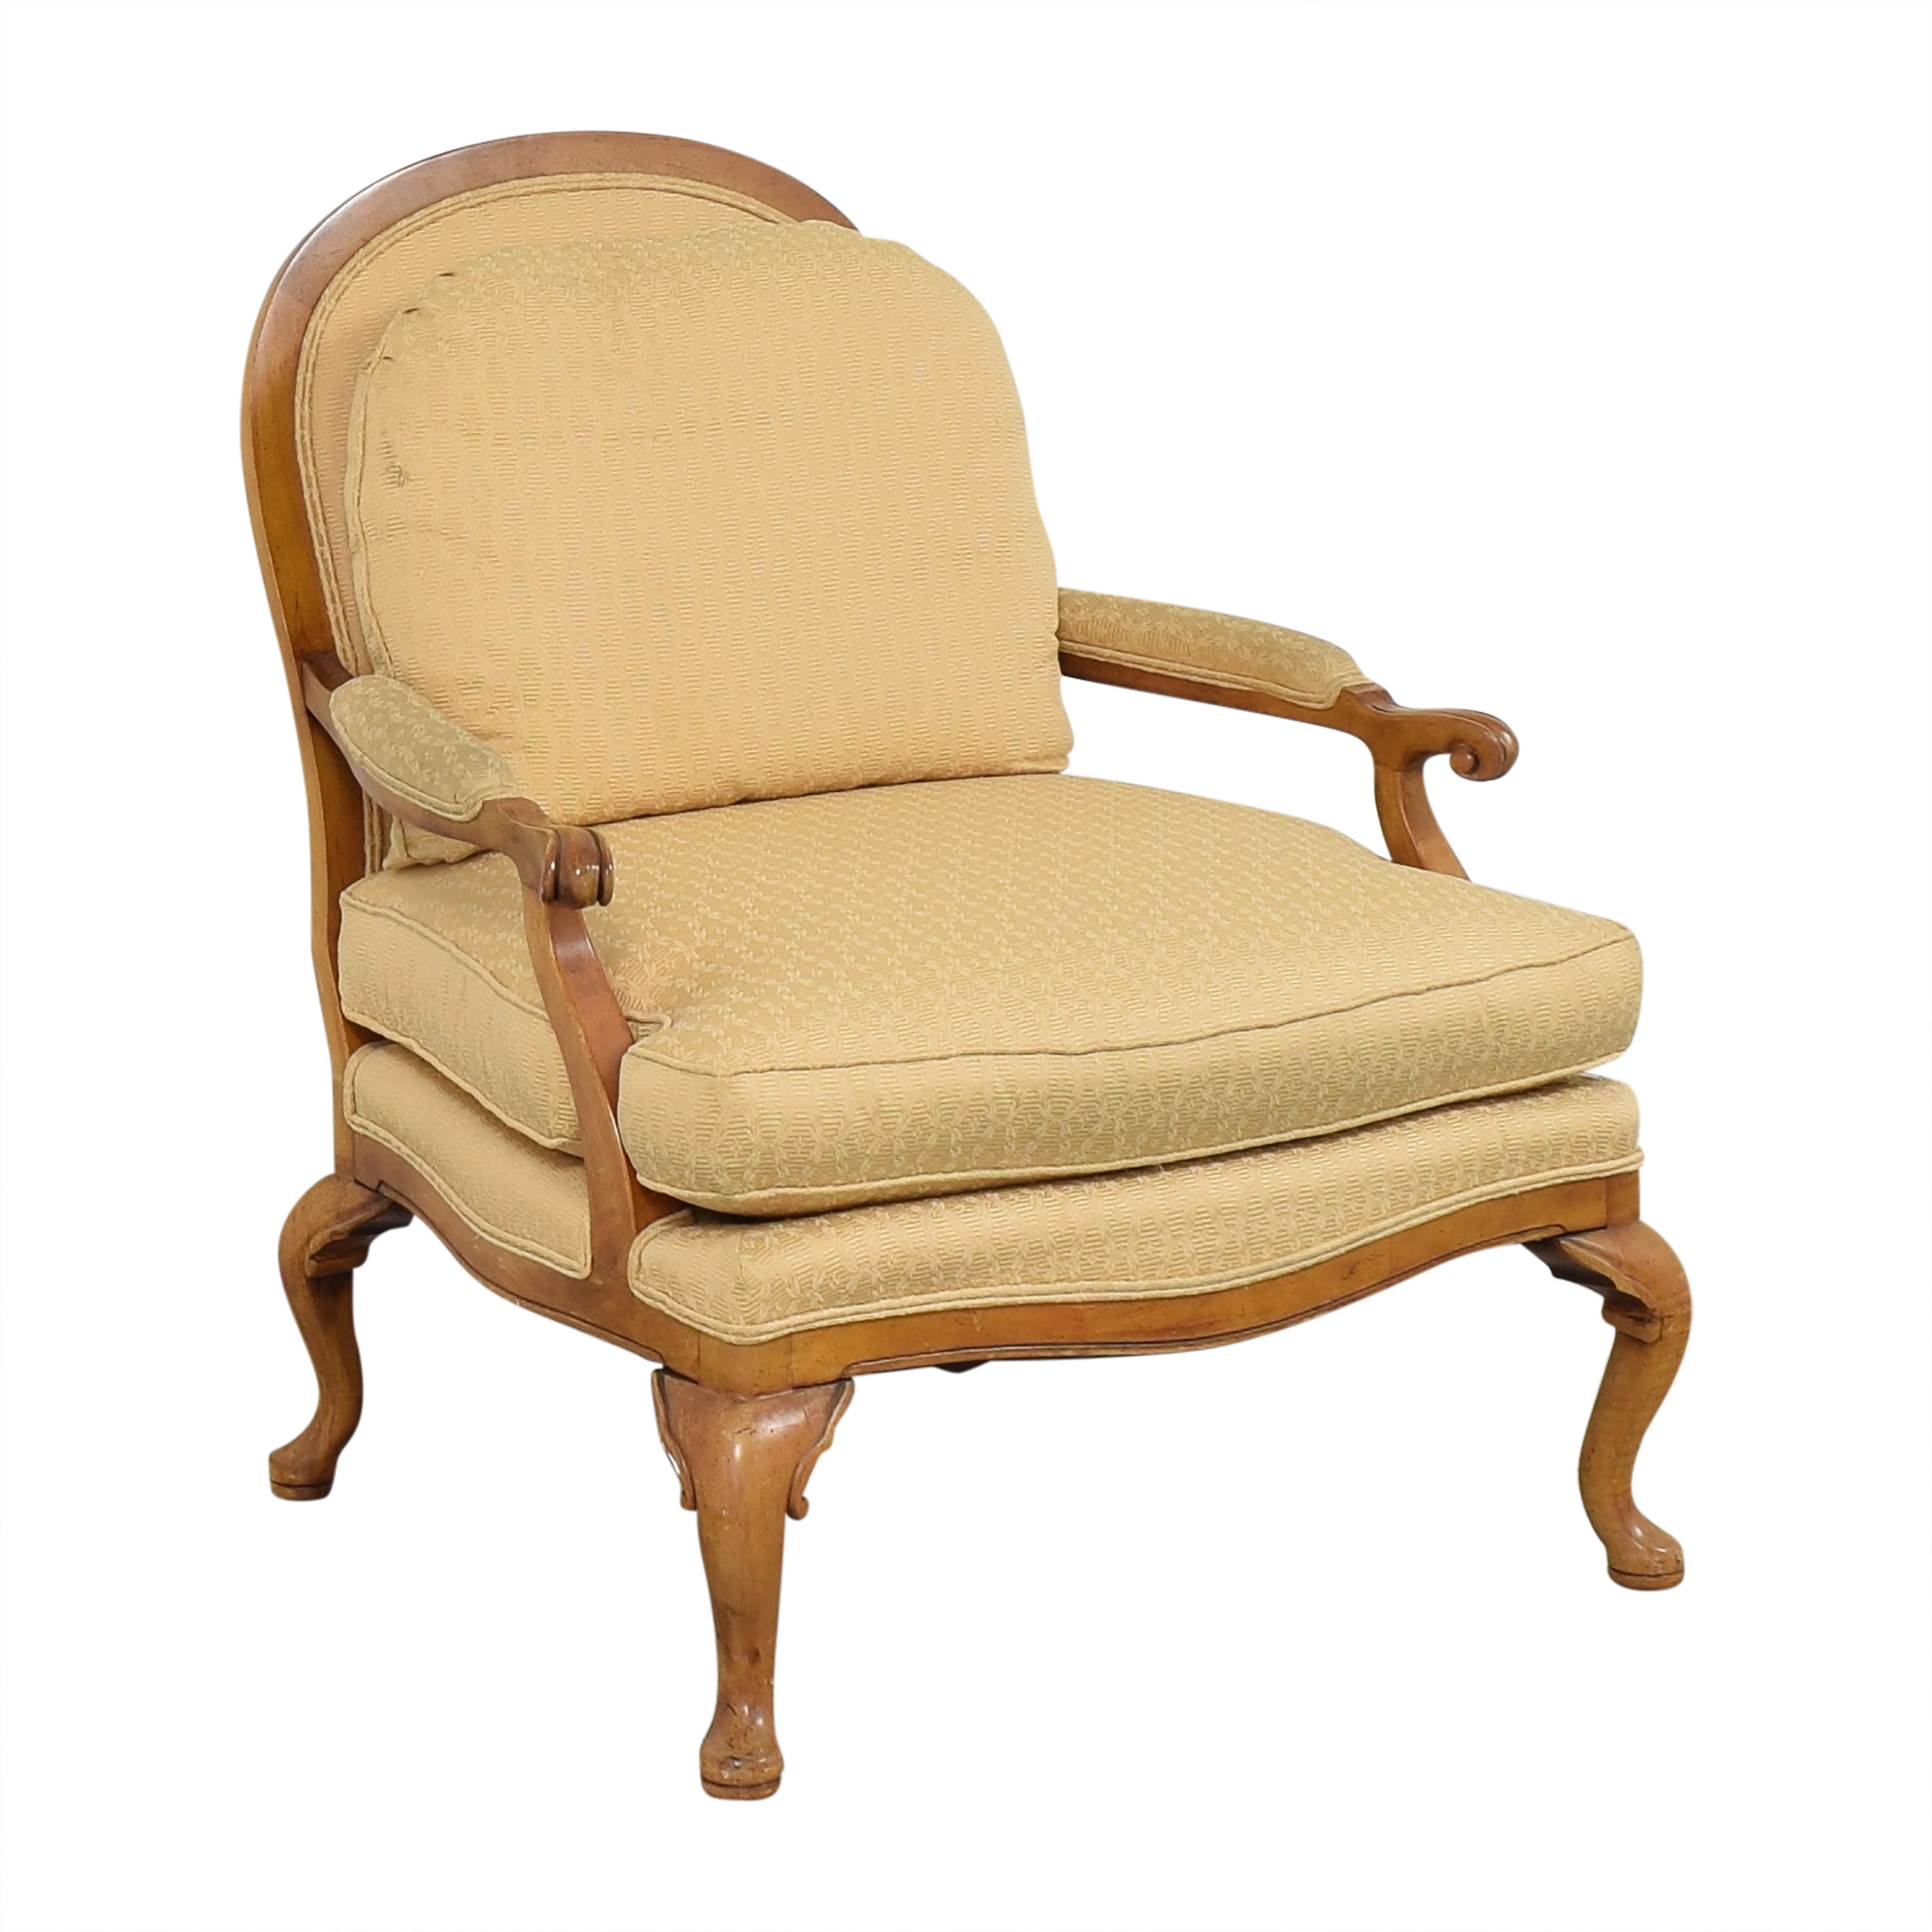 Highland House Furniture Highland House Accent Fauteuil Chair pa